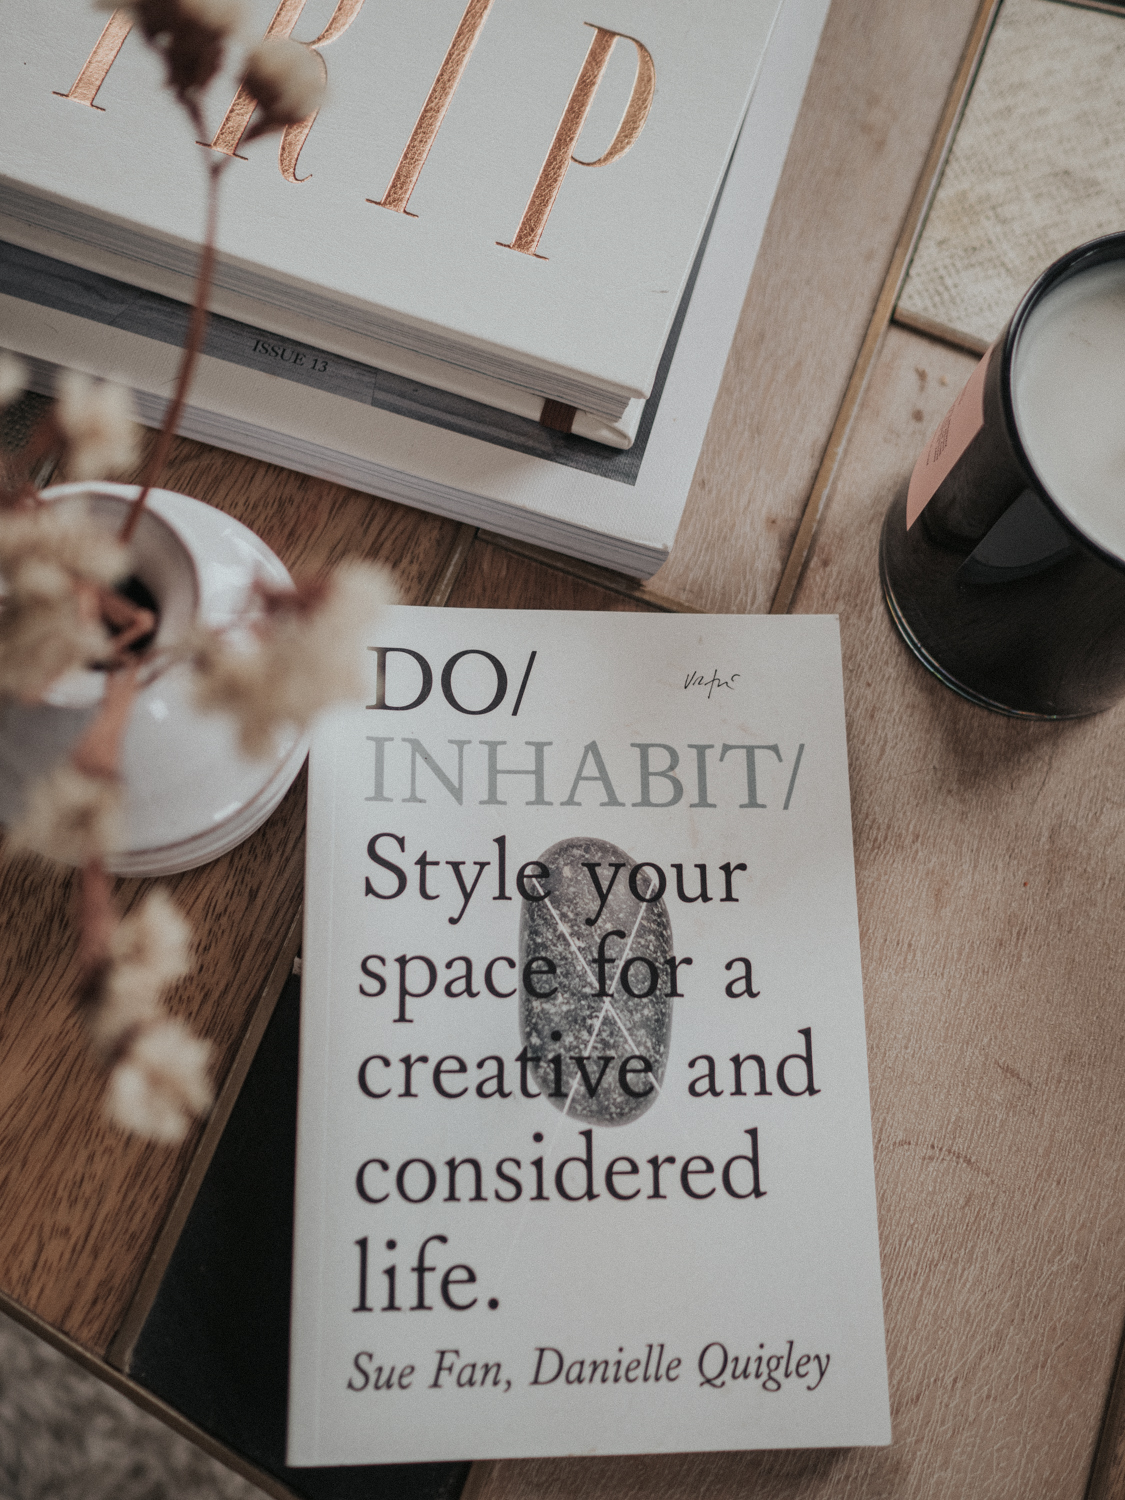 The Do Book Company: Do InHabit sits on a table with flowers and other books